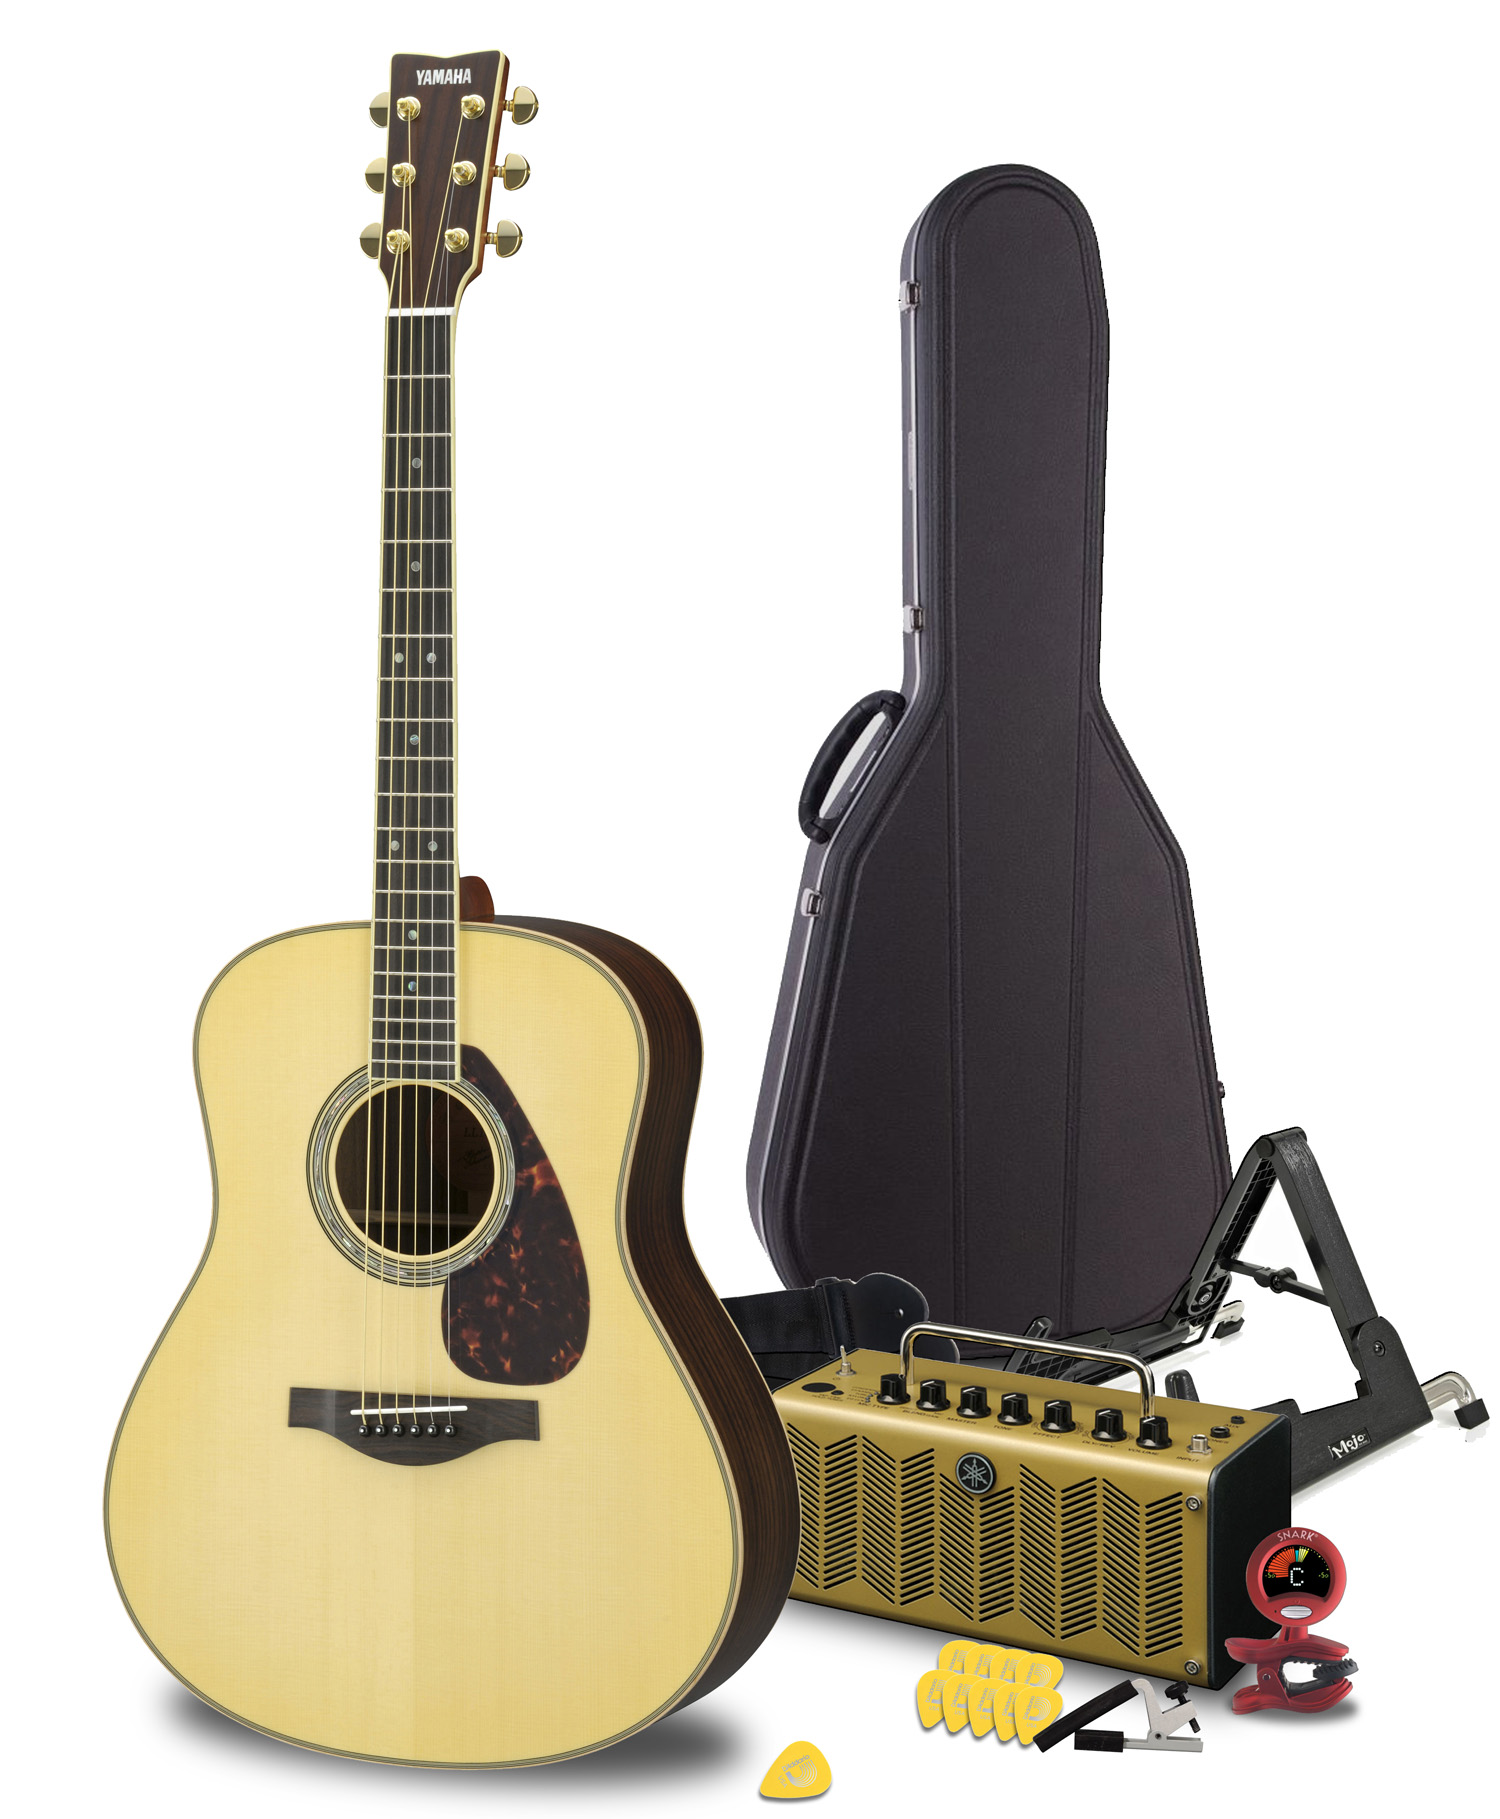 Acoustic Yamaha Maverick Deluxe Acoustic Guitar Package Featuring The Ll16 Are Handcrafted Guitar Thr5a Acoustic Amplifier